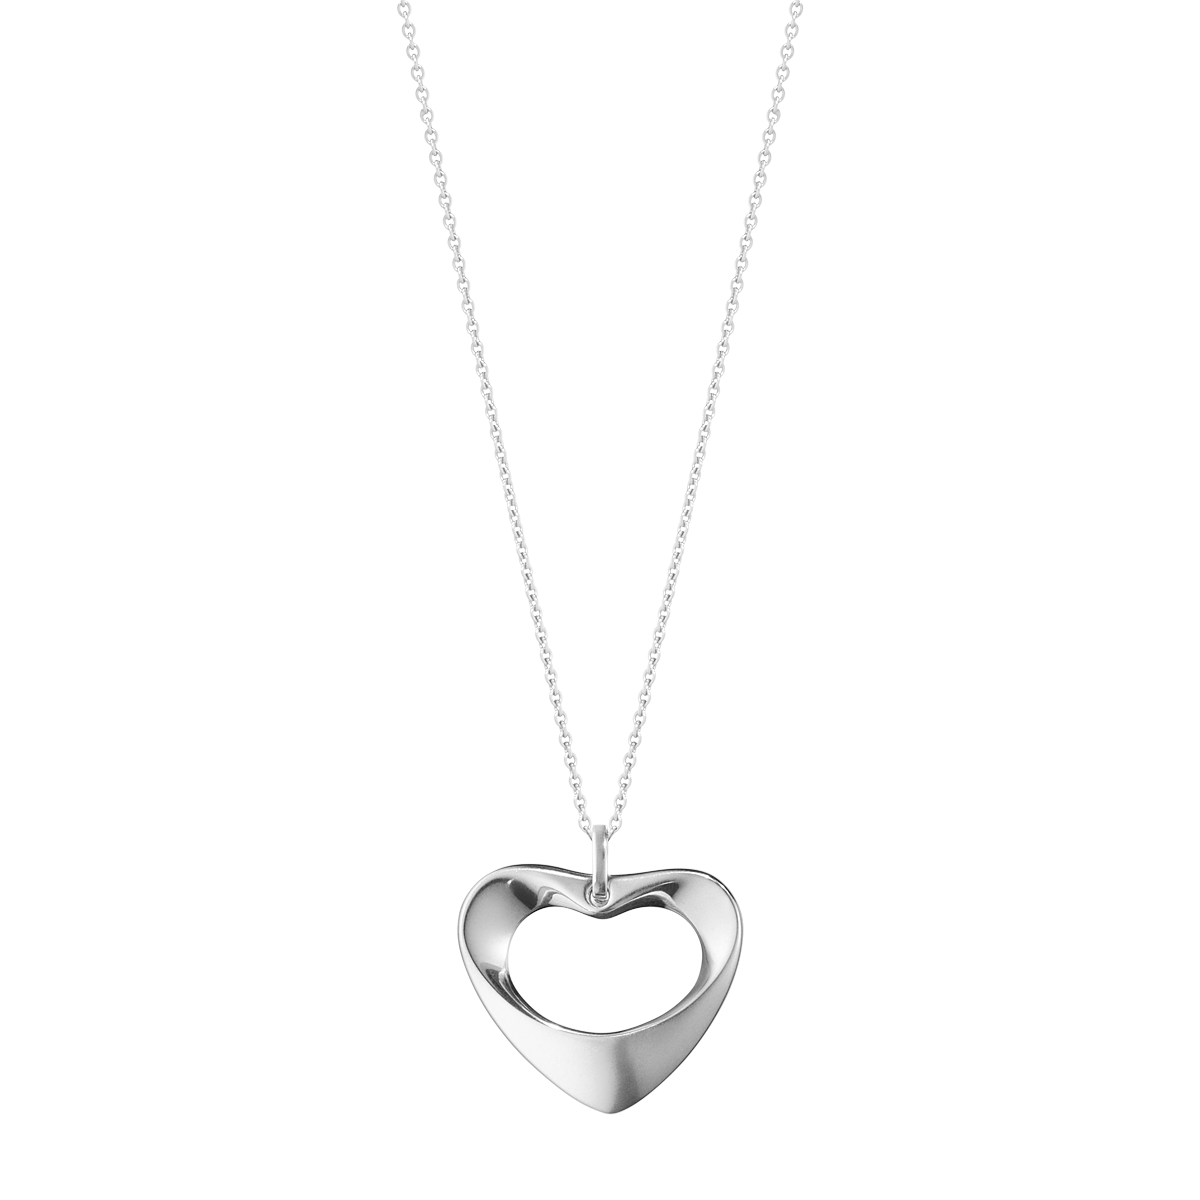 Hearts Of Georg Jensen Pendant Necklace In Sterling Silver